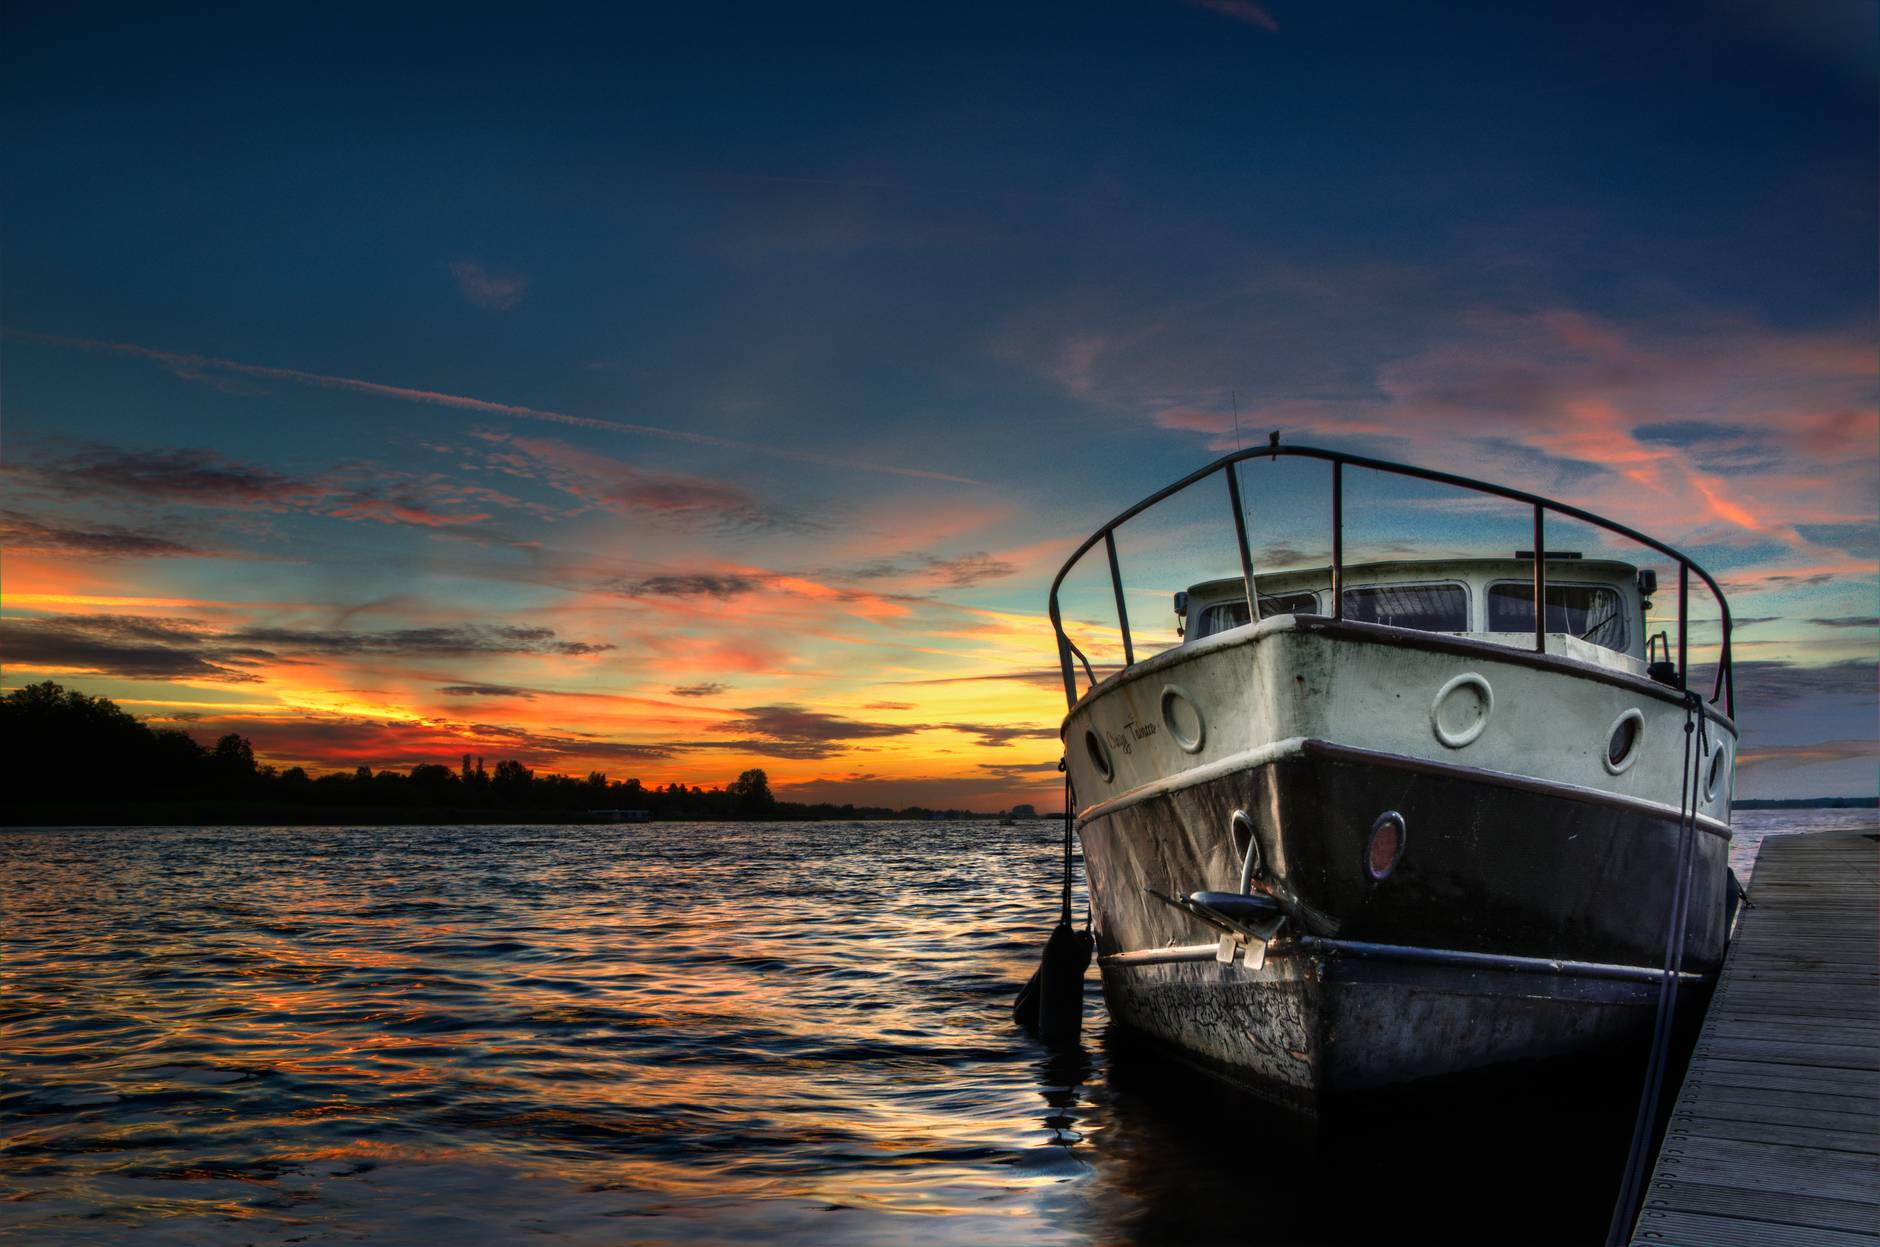 sunset boat lake hdr